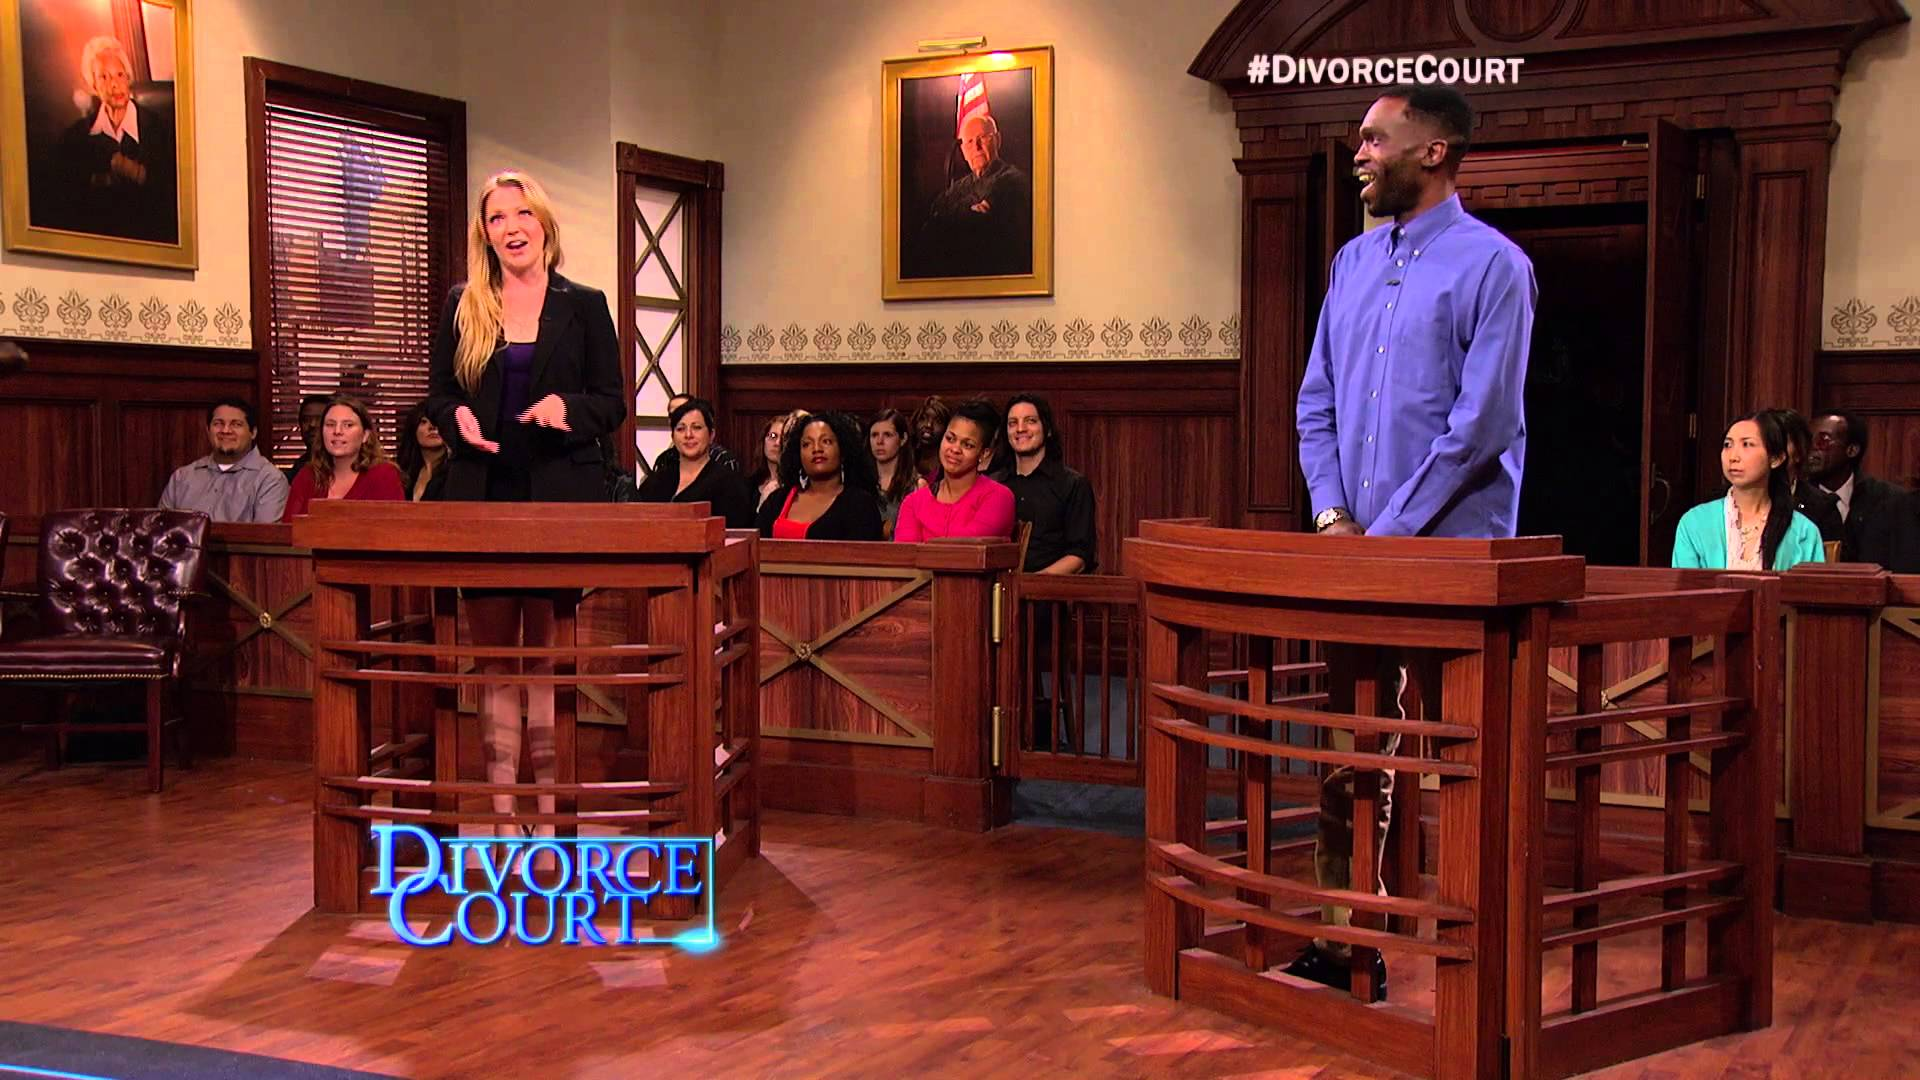 man accuses wife of sleeping wit Man Accuses Wife Of Sleeping With Every Wu Tang Clan Member On Divorce Court